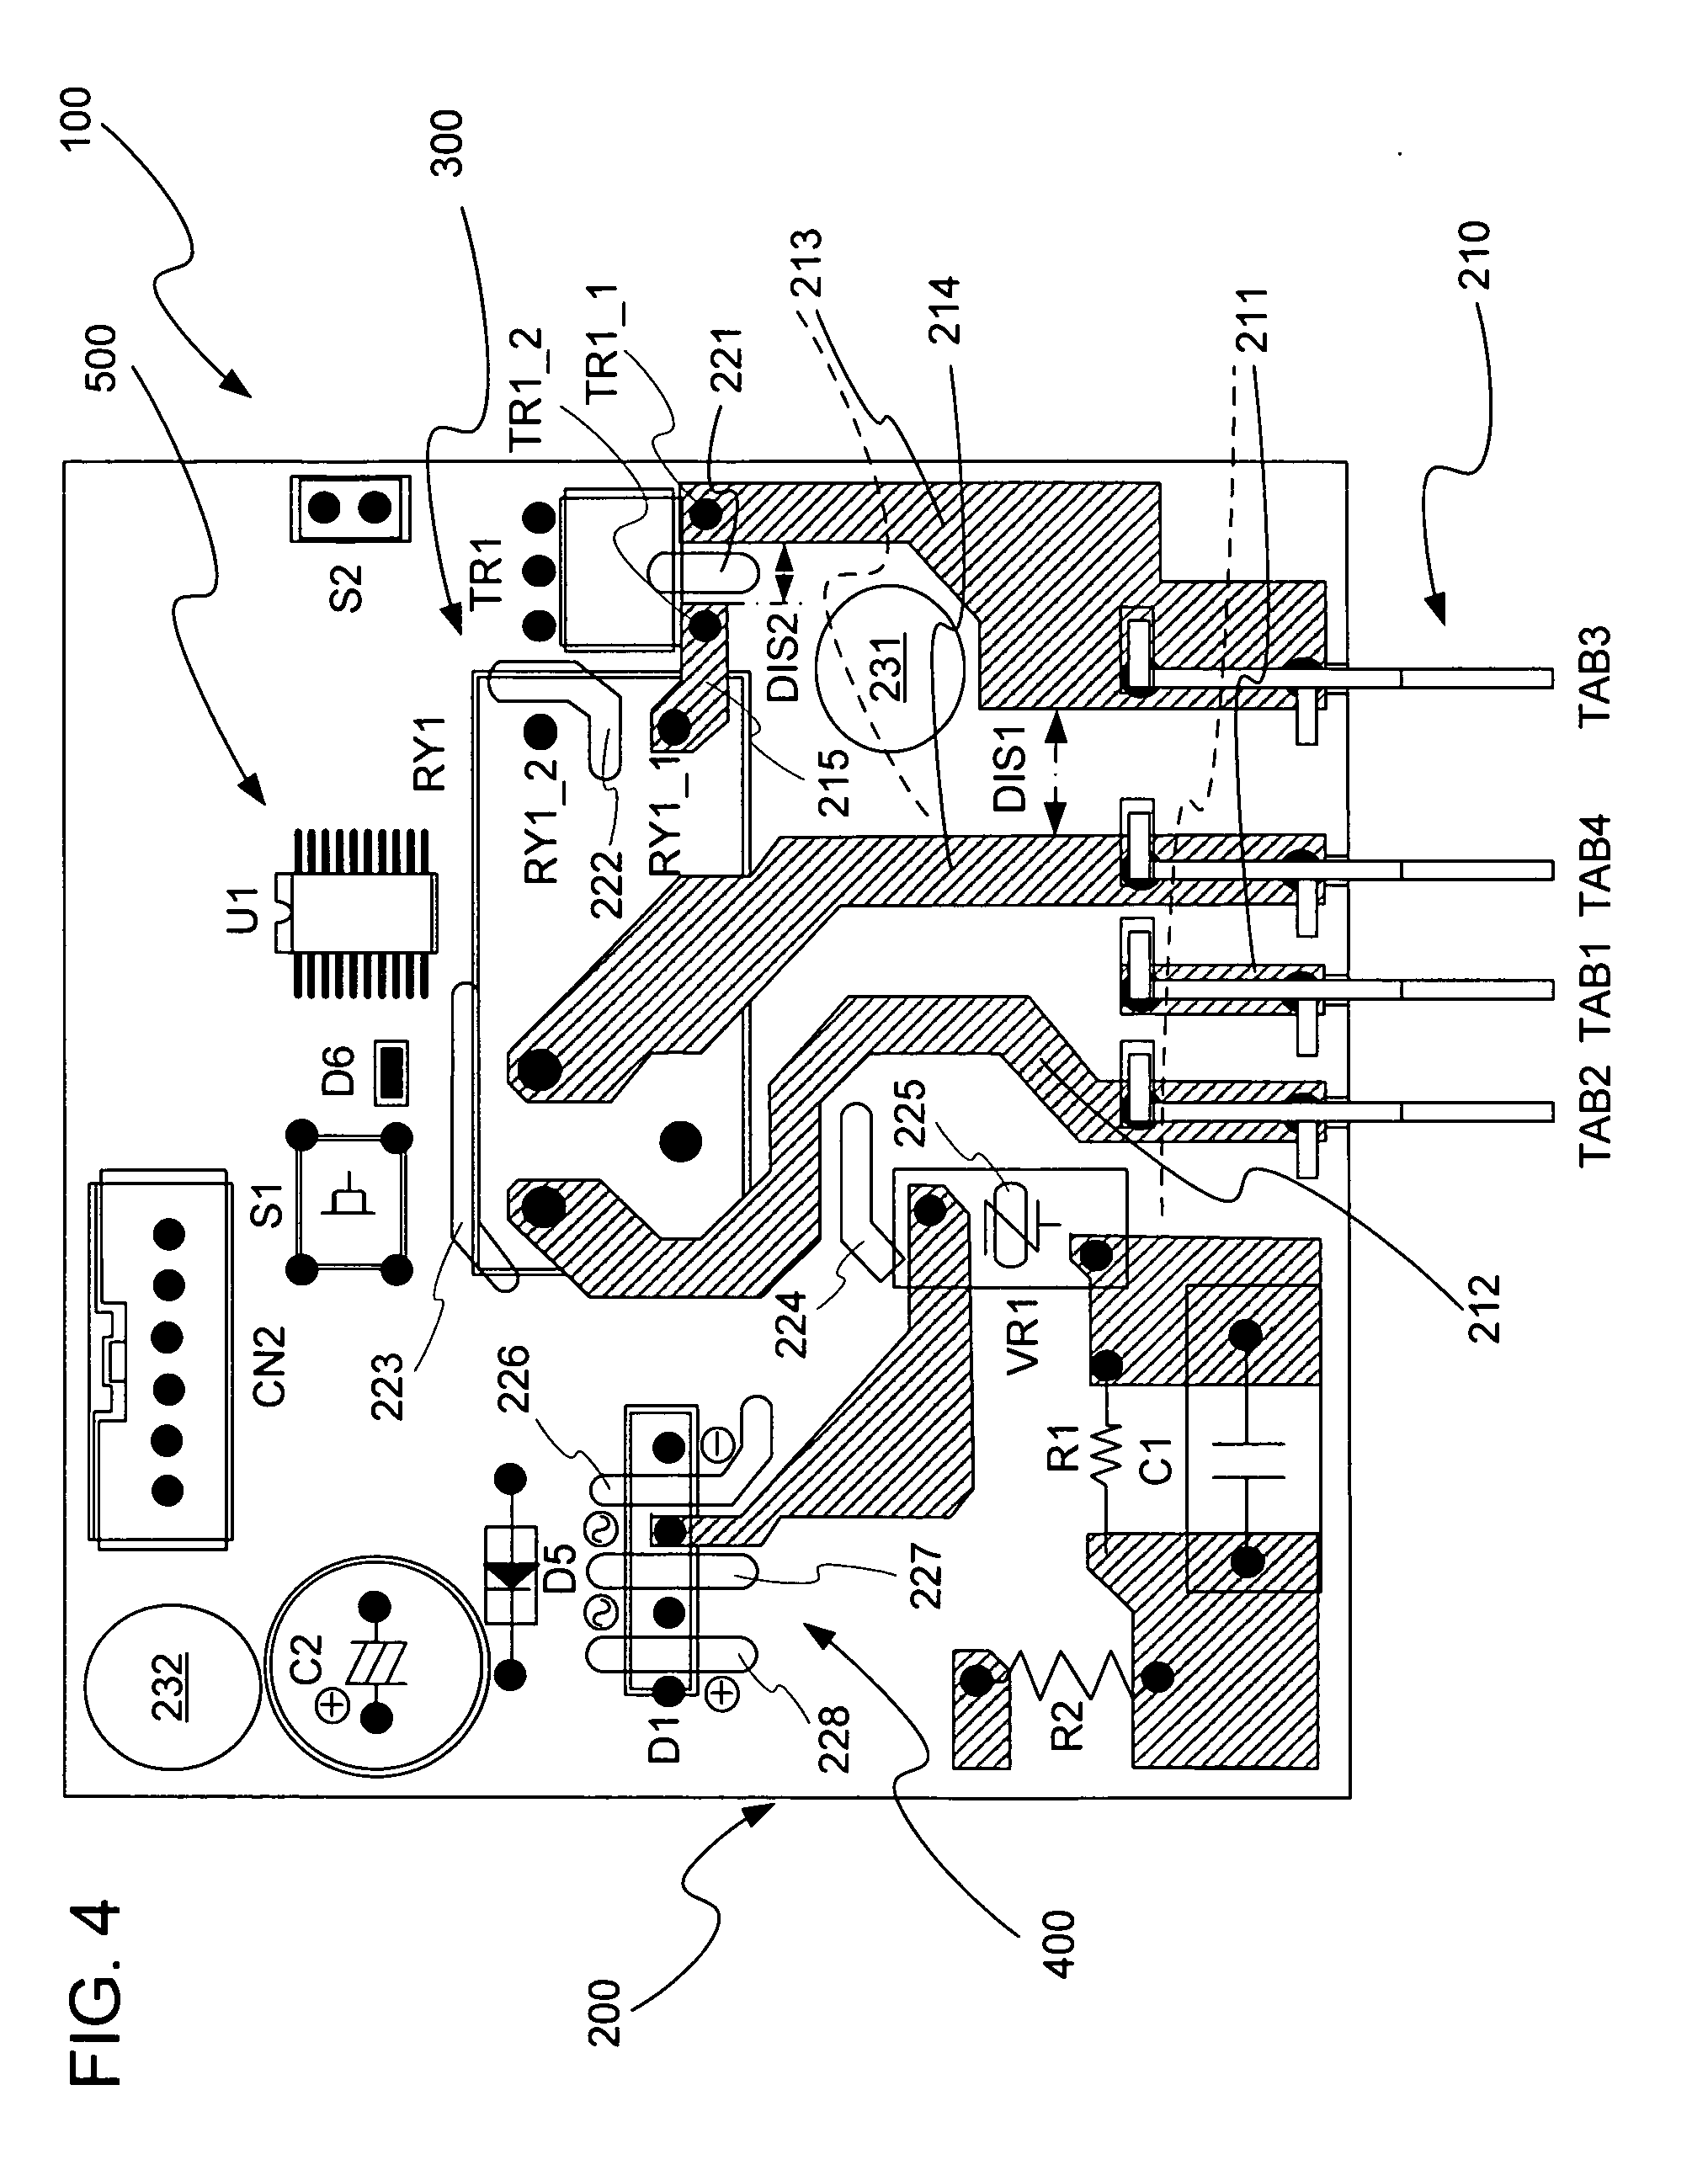 Wiring diagram for defrost timer wr9x330 cute typical defrost timer wiring diagram ideas electrical and pooptronica Images